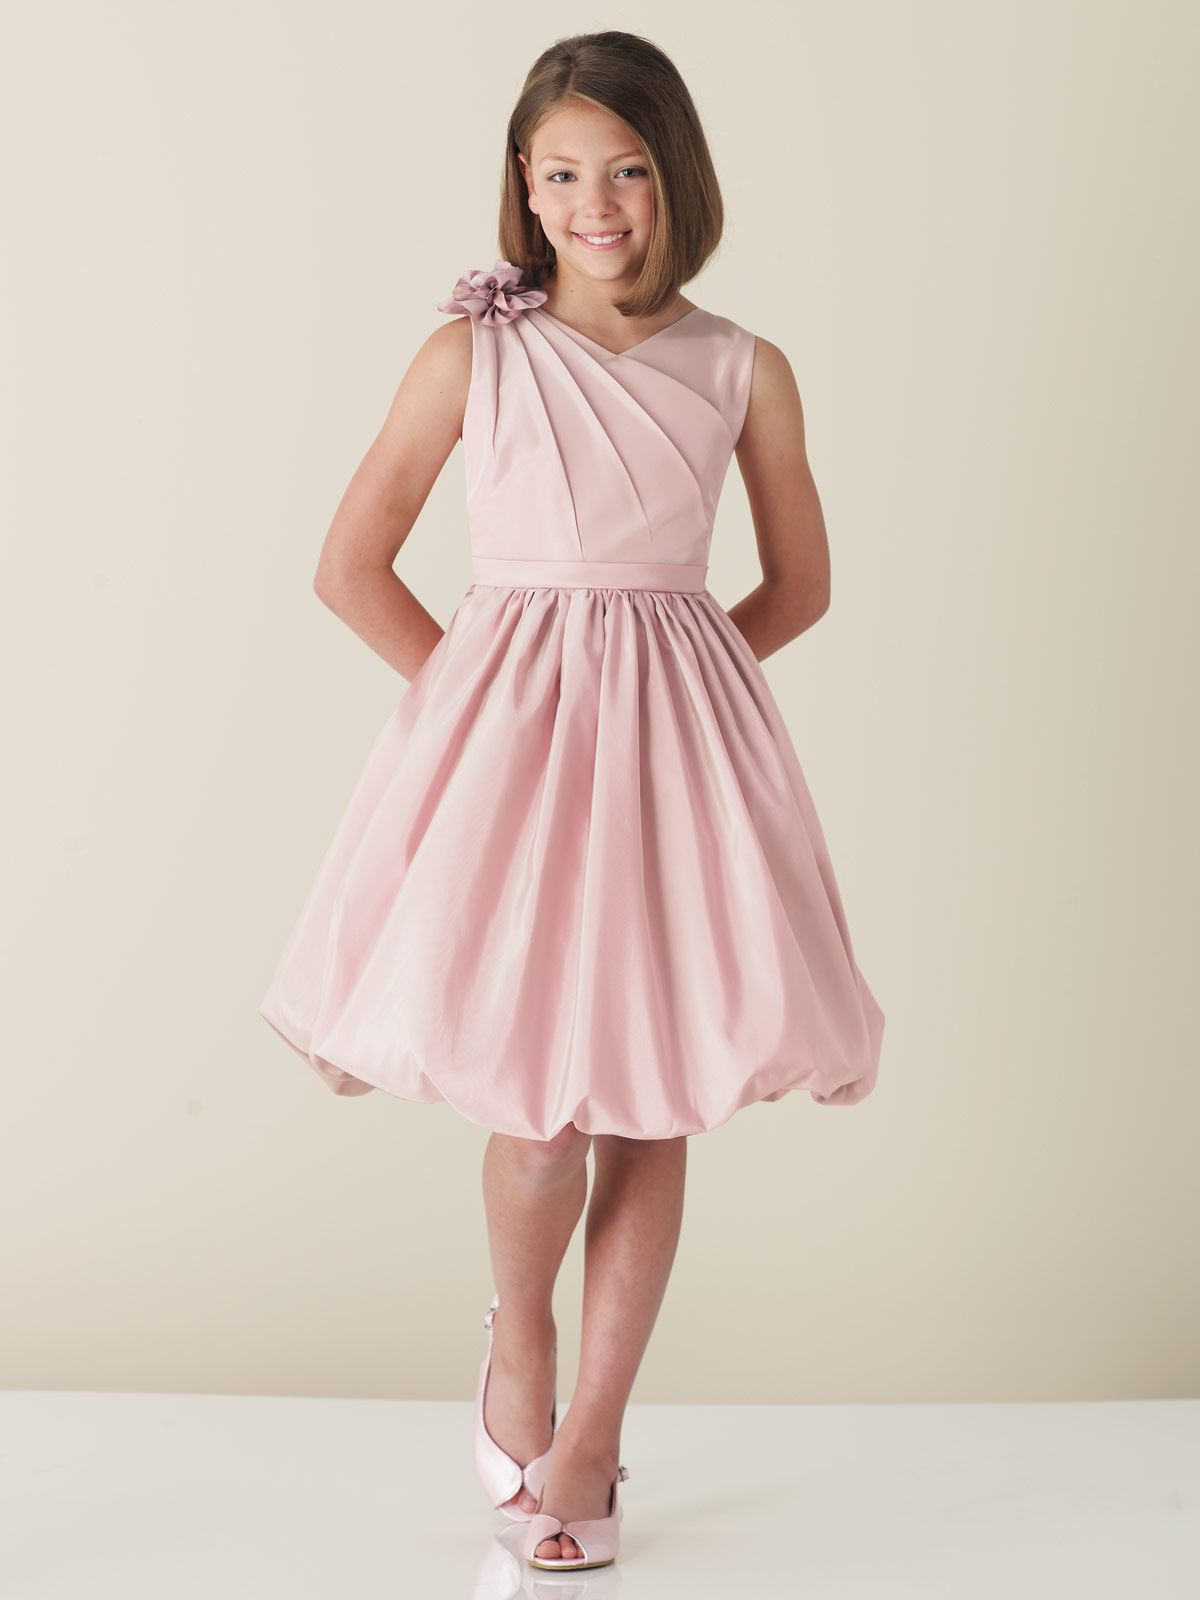 Pink Junior Bridesmaid Dresses | Pink Knee Length Satin Junior ...